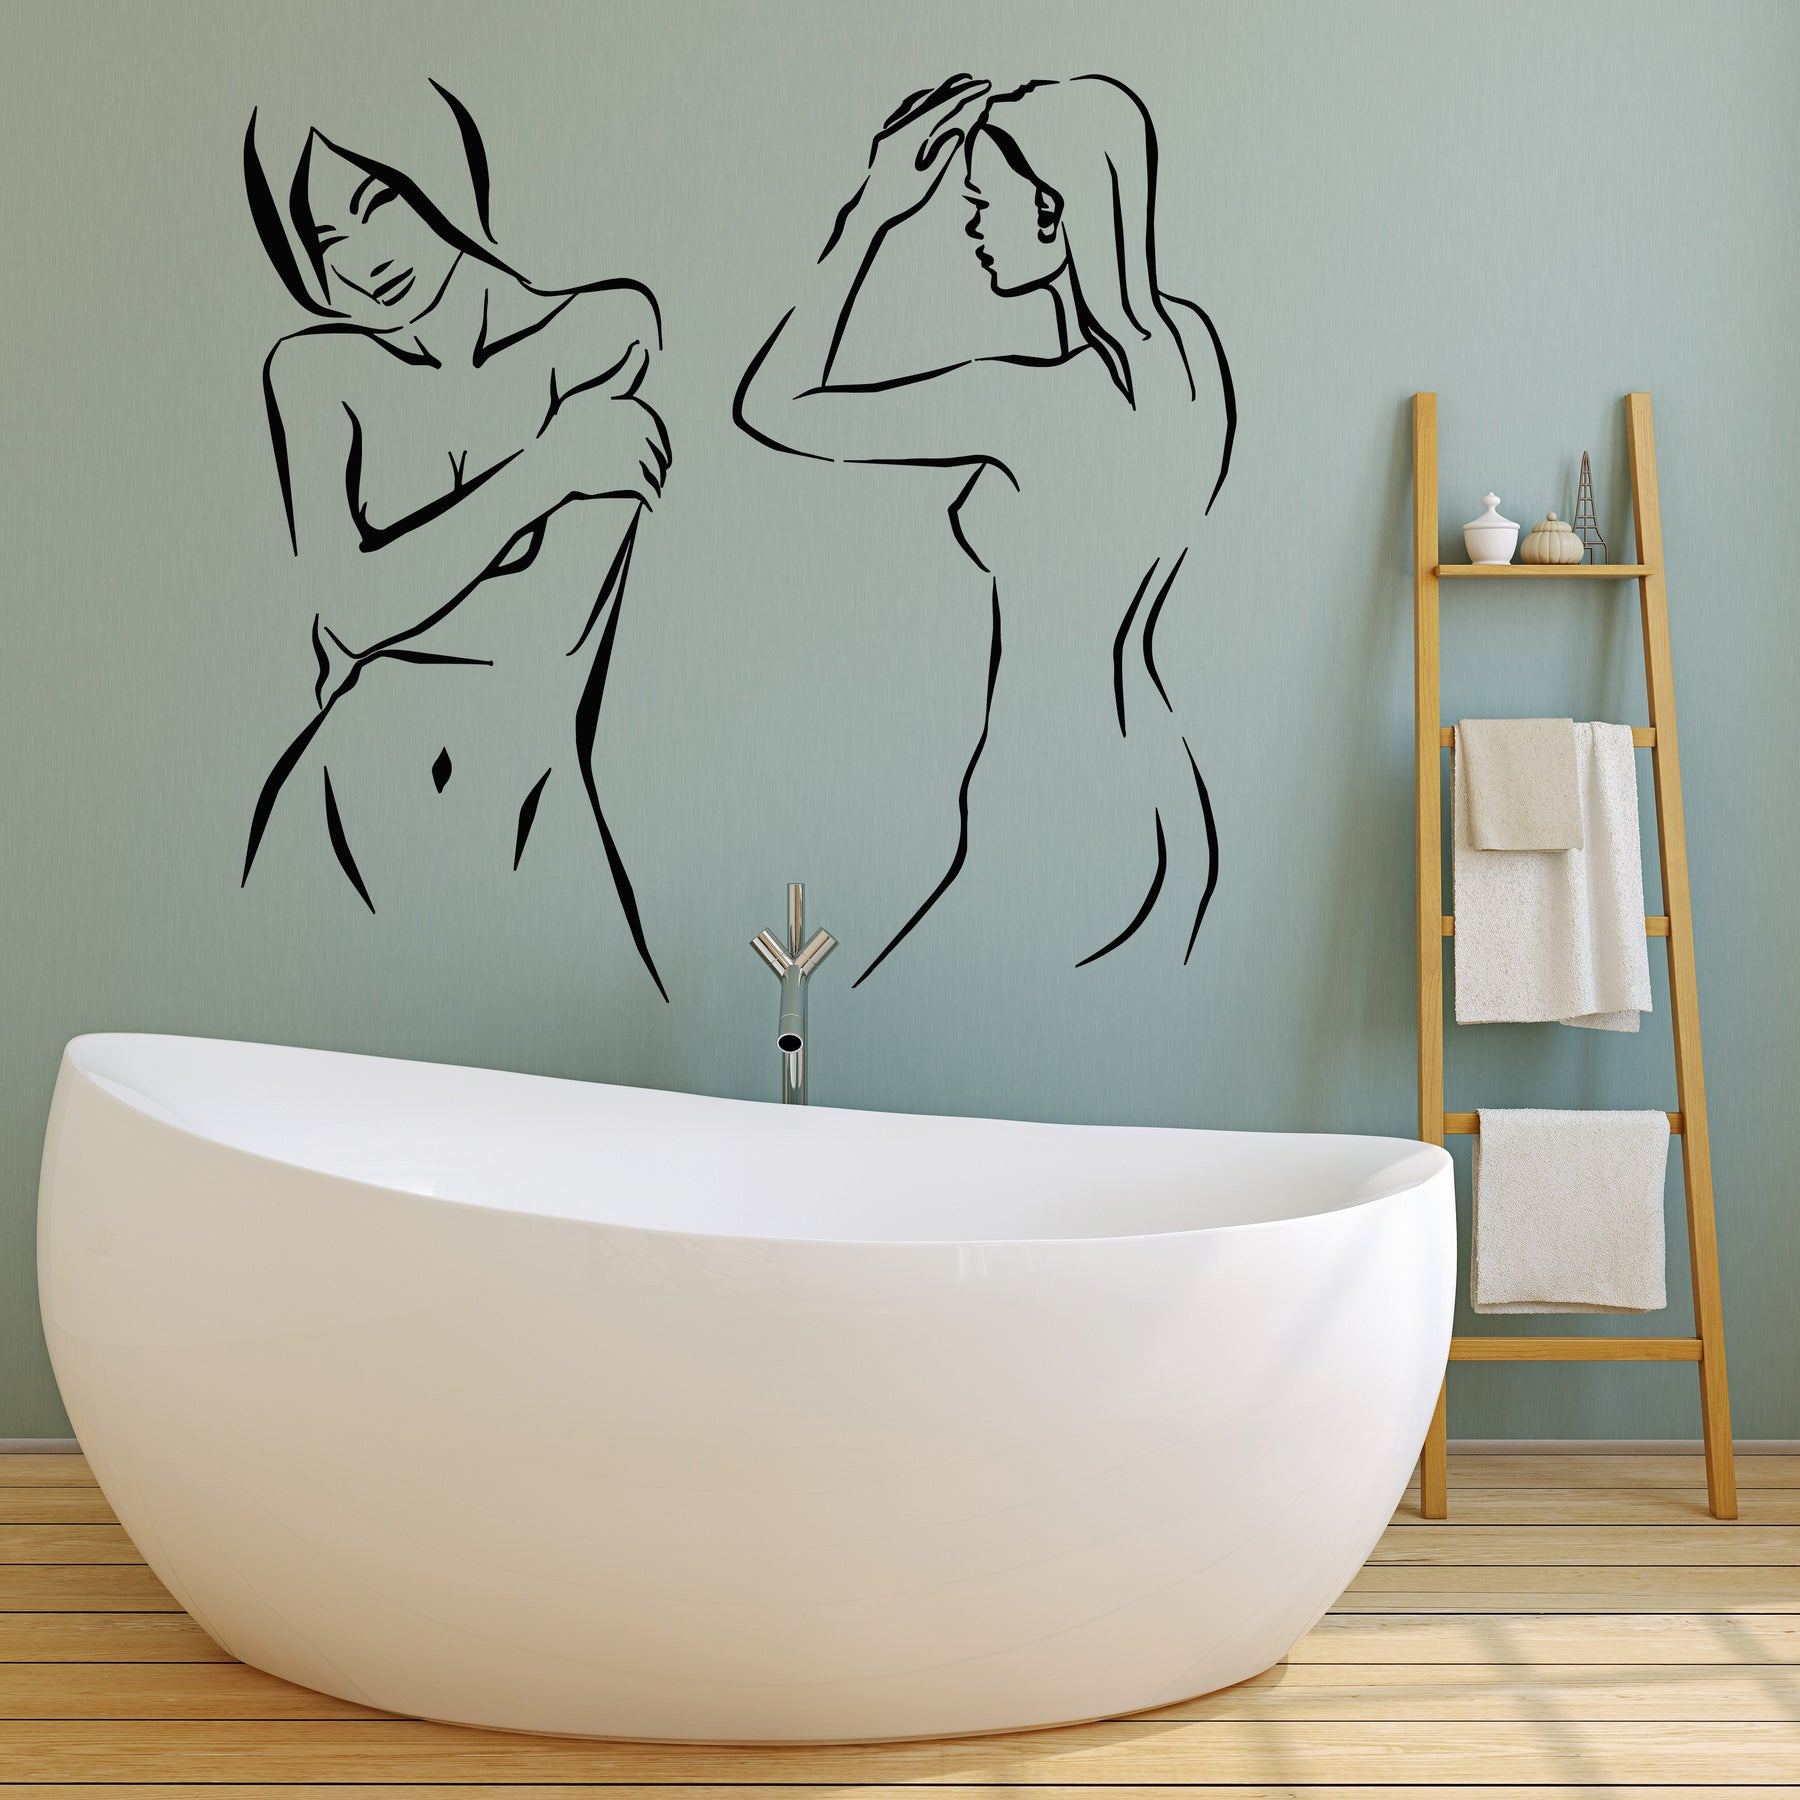 Naked girls indoor Vinyl Wall Decal Sexy Hot Naked Nude Girls No Clothes Adult Decor Stic Wallstickers4you